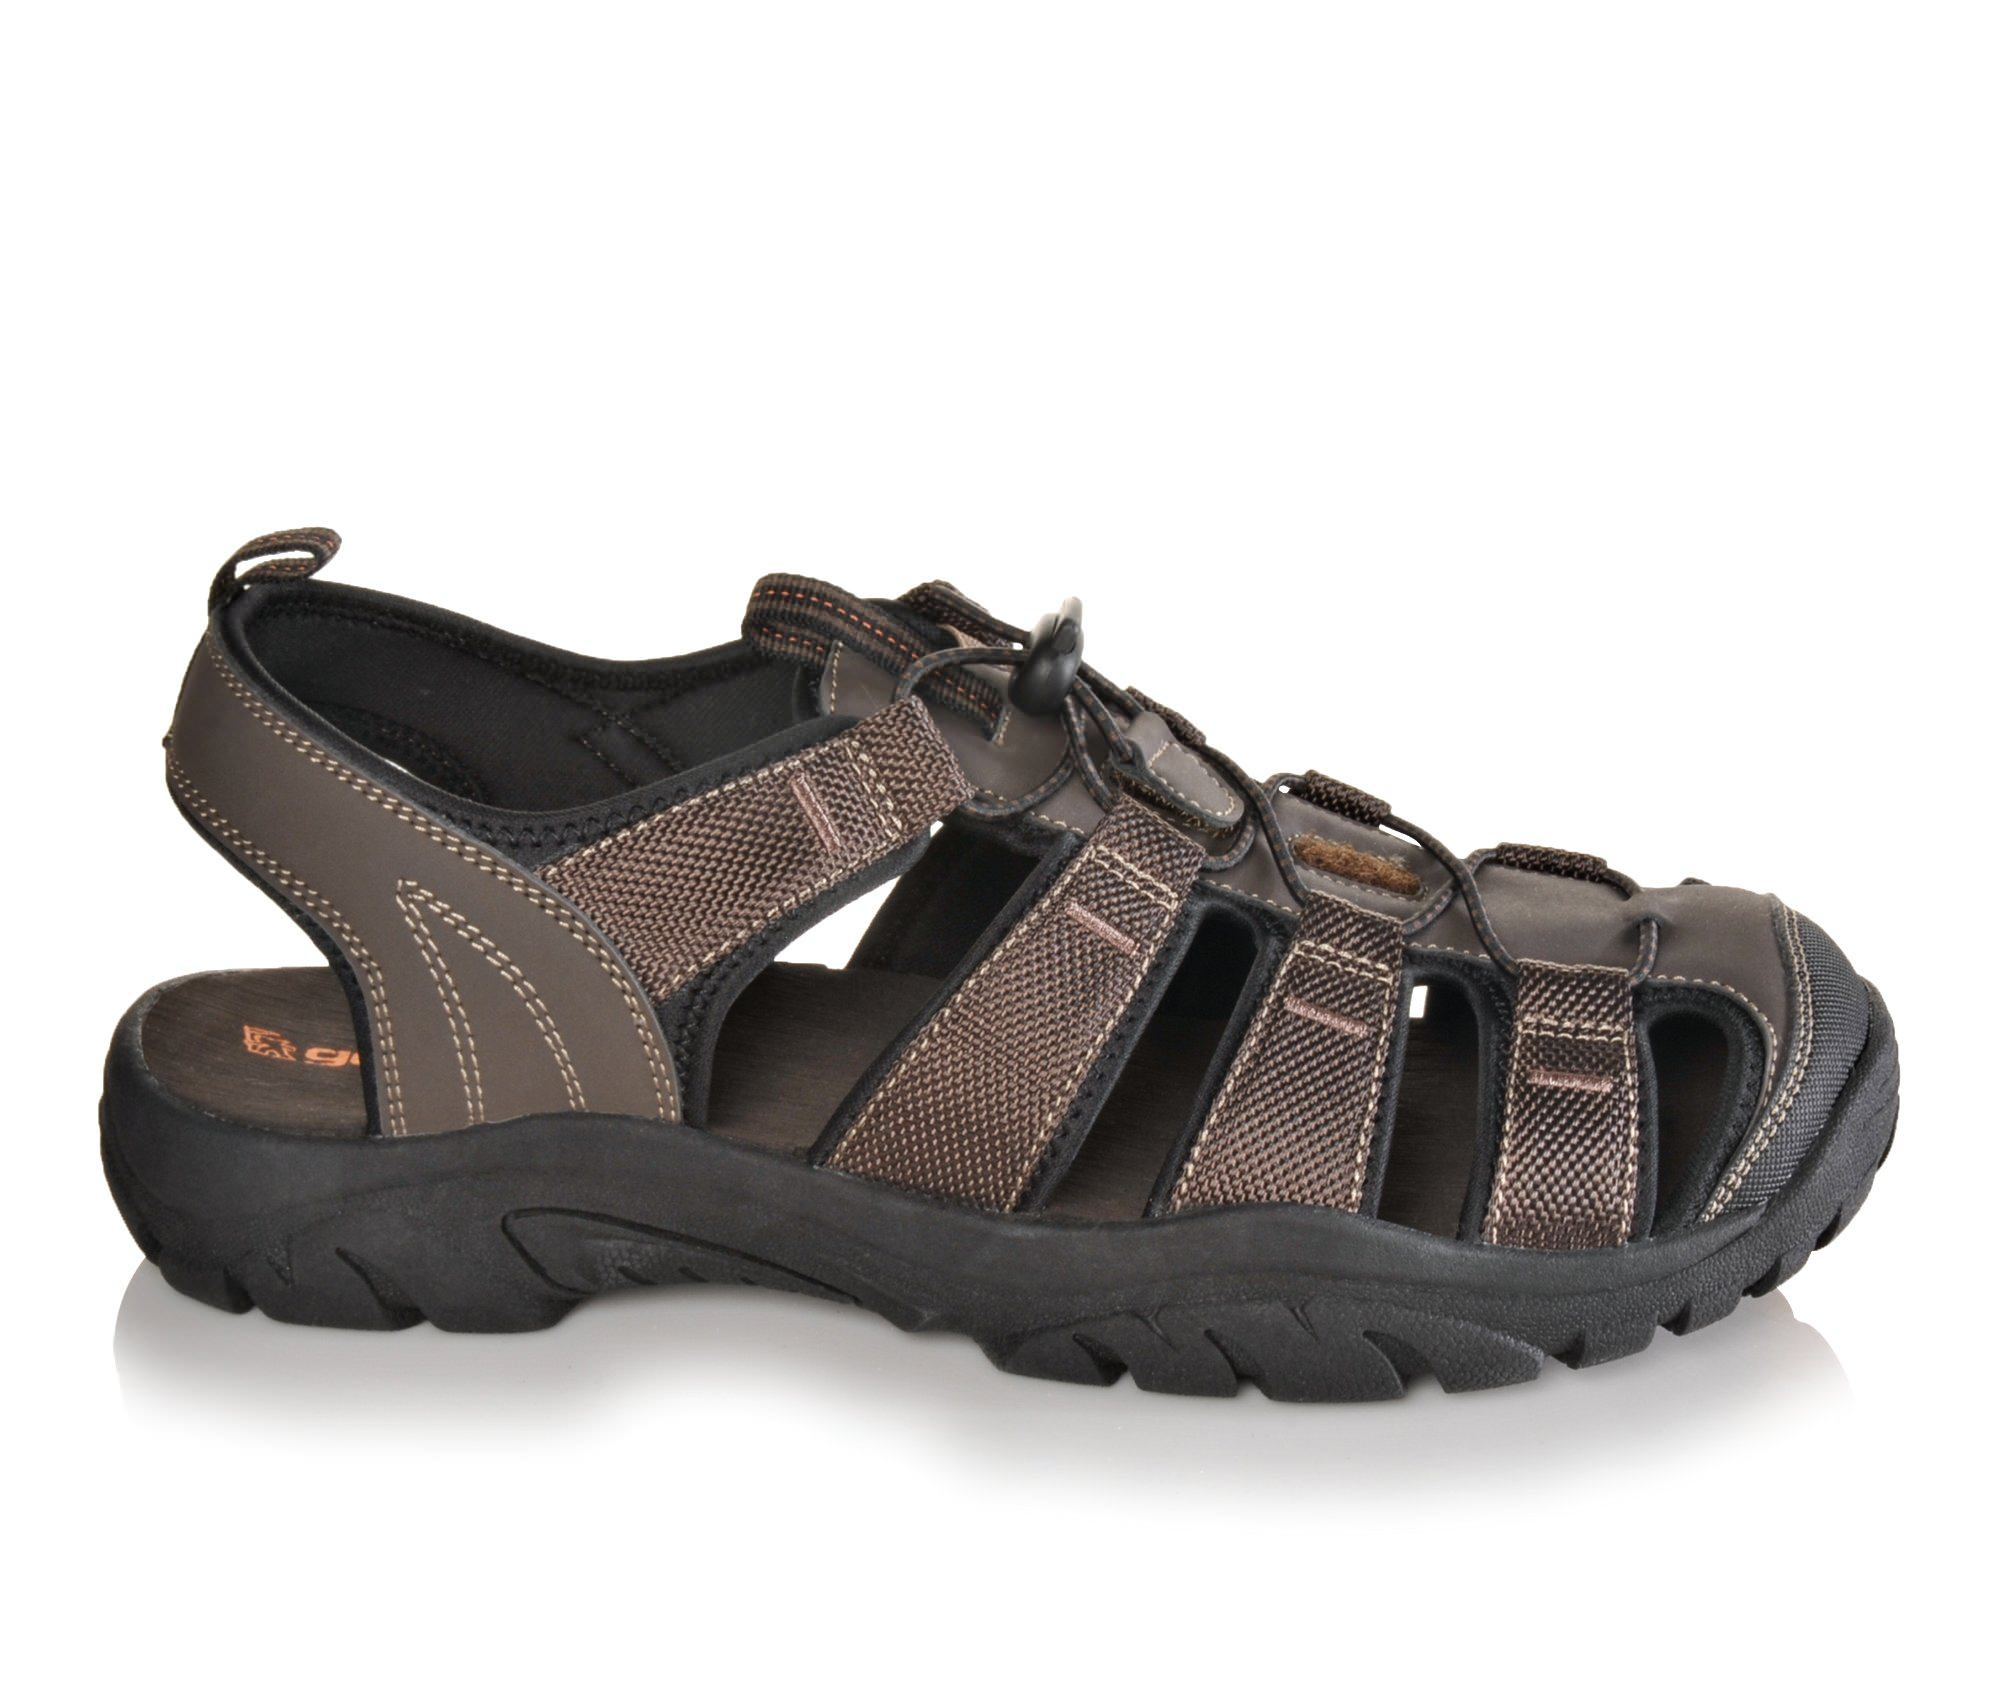 Men's Gotcha Gulch Sandals (Brown)